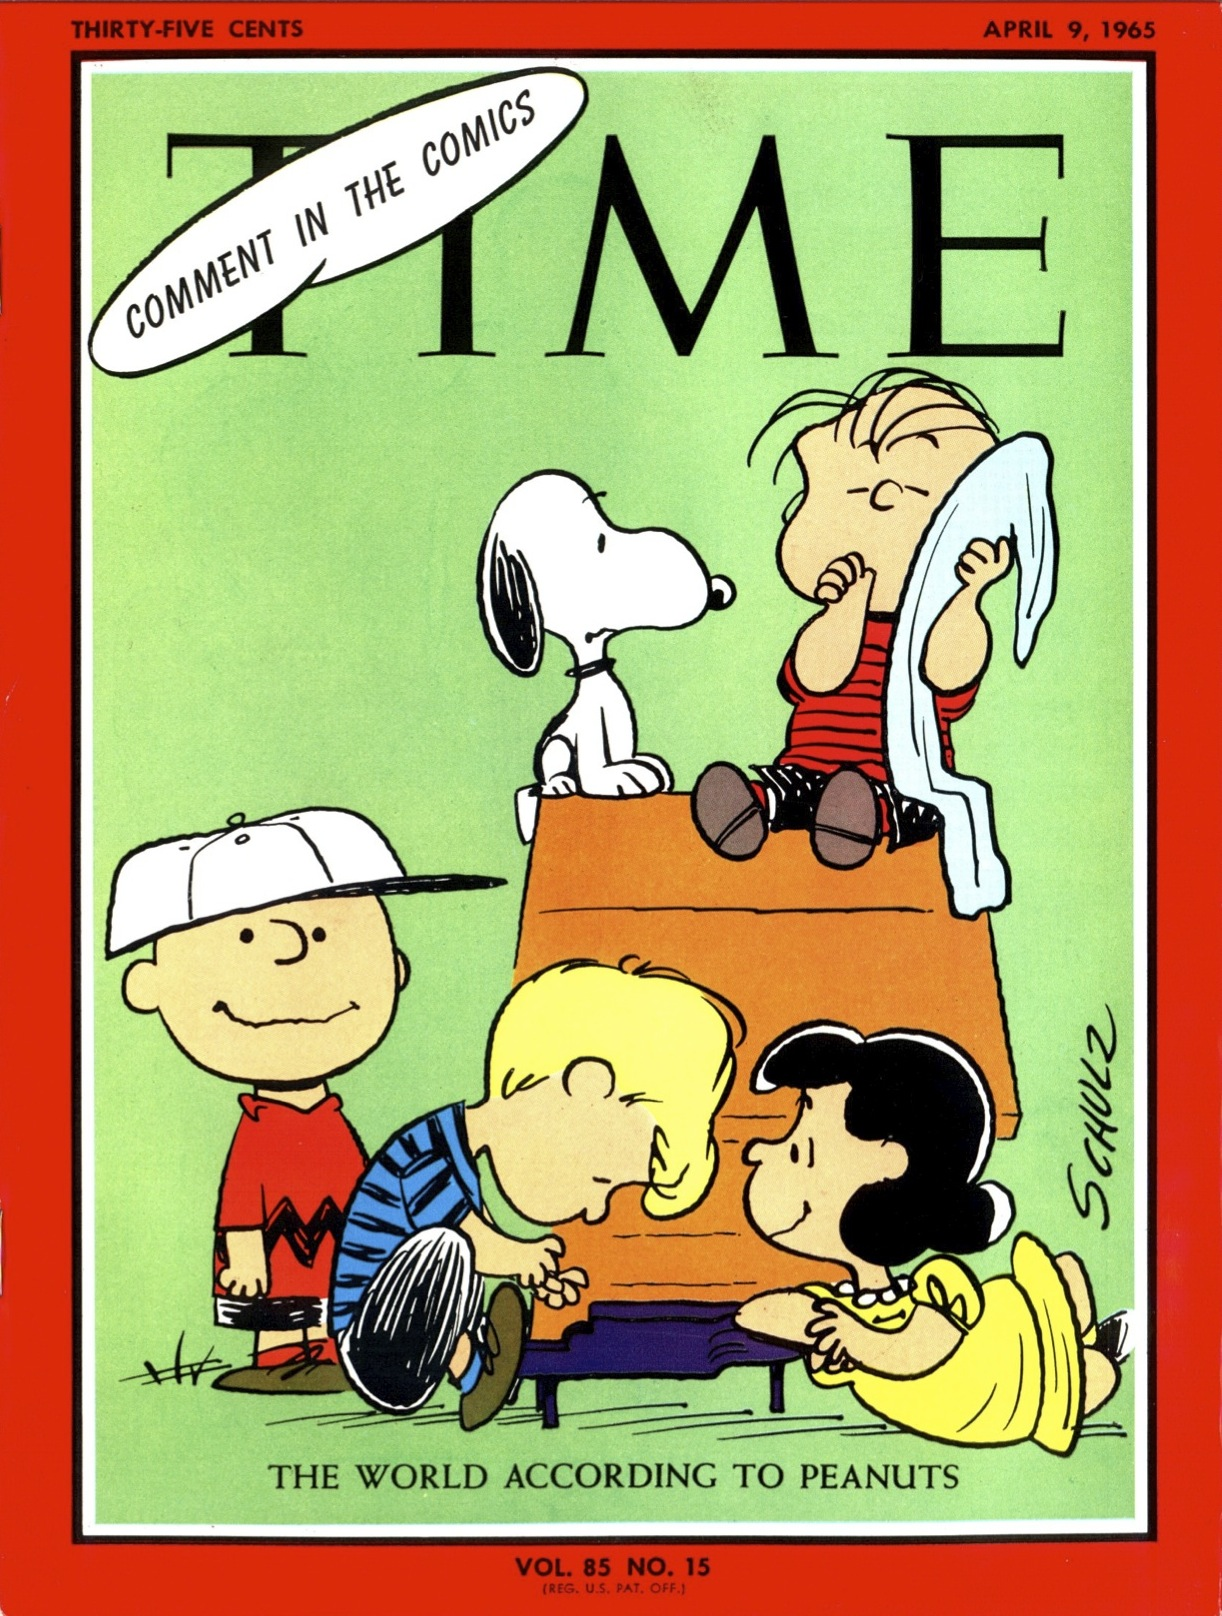 The April 9, 1965, cover of TIME